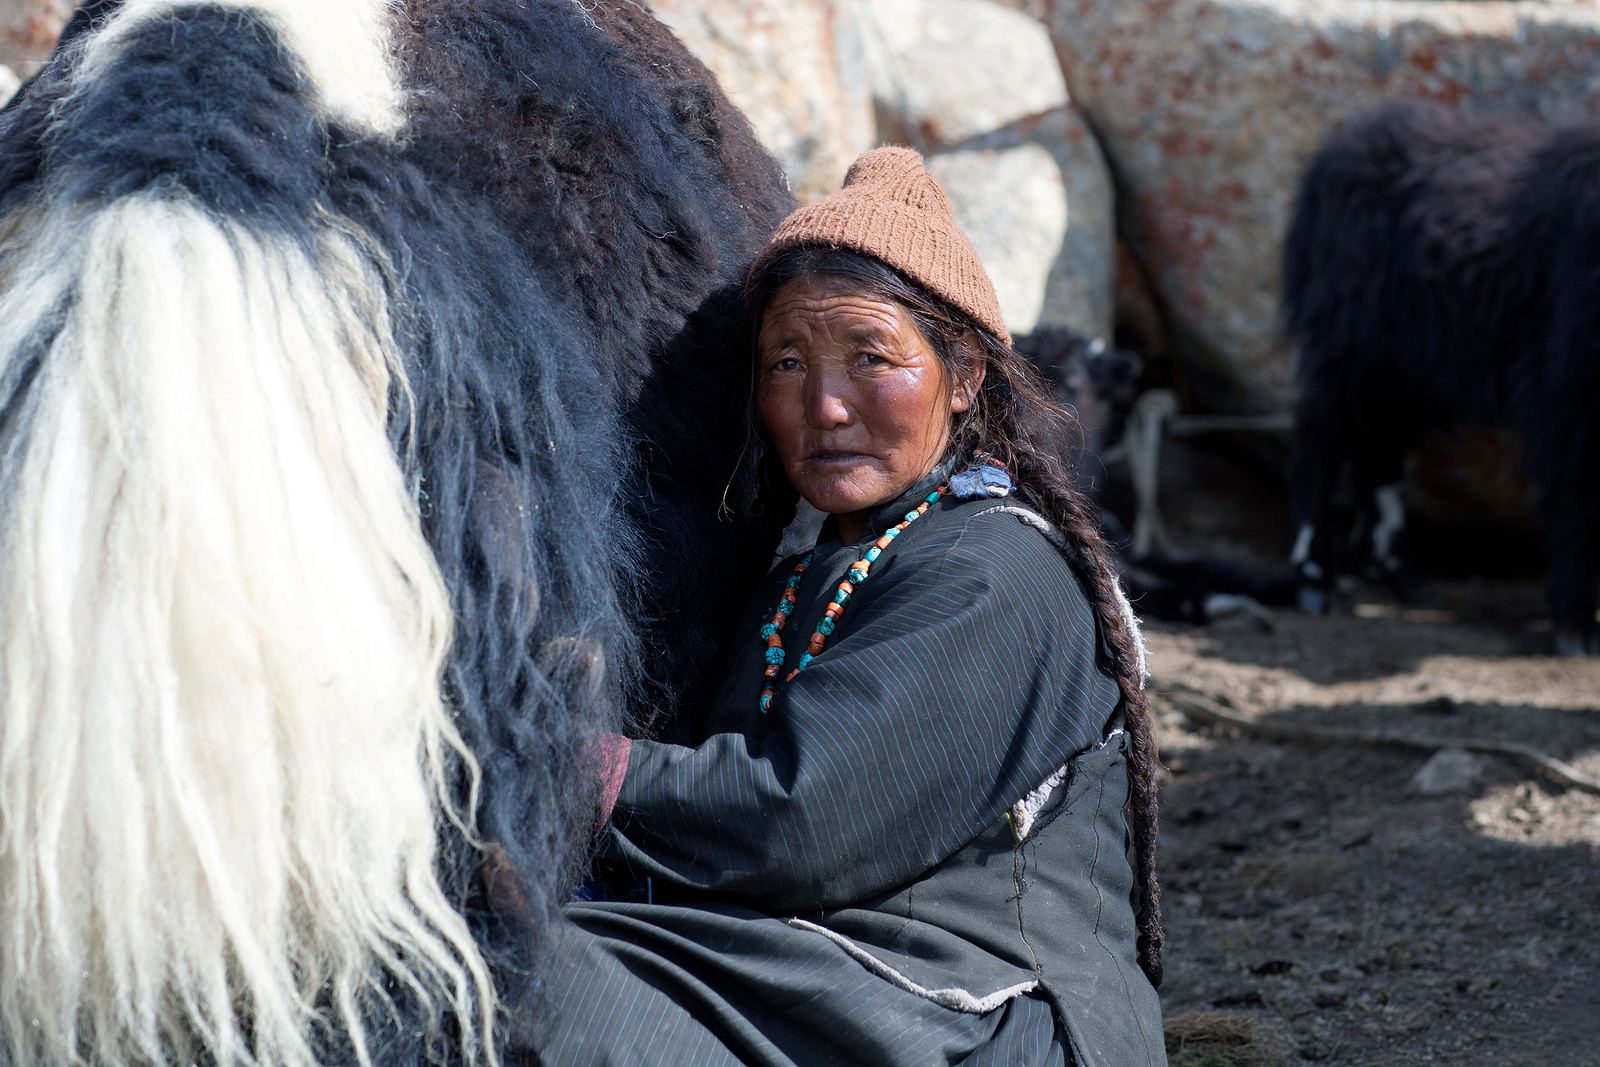 bigstock-tibetan-woman-with-yak-in-lada-148124192.jpg